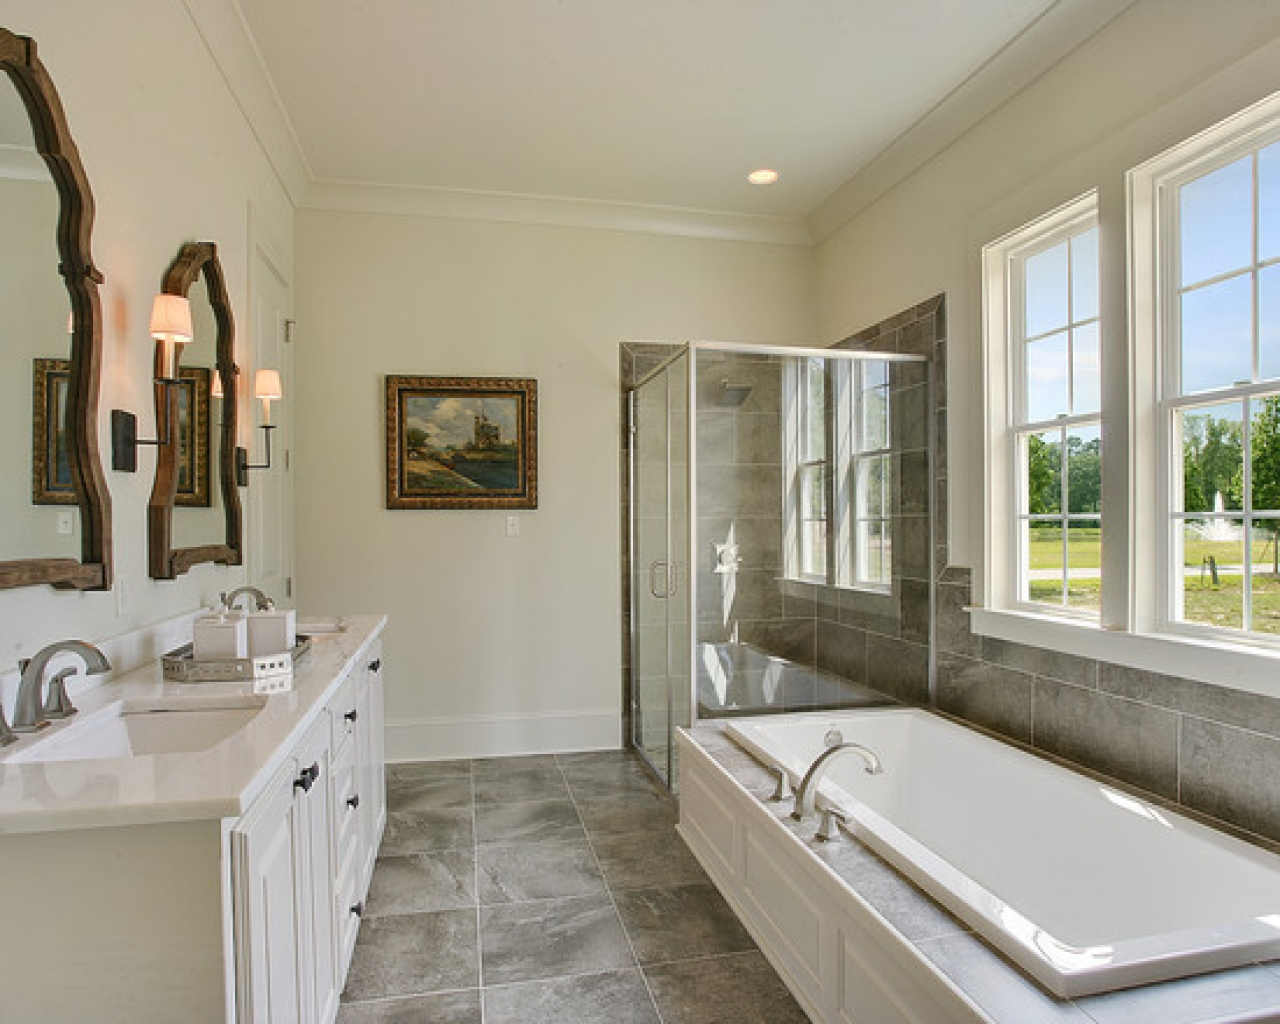 home bathroom ideas photo - 4